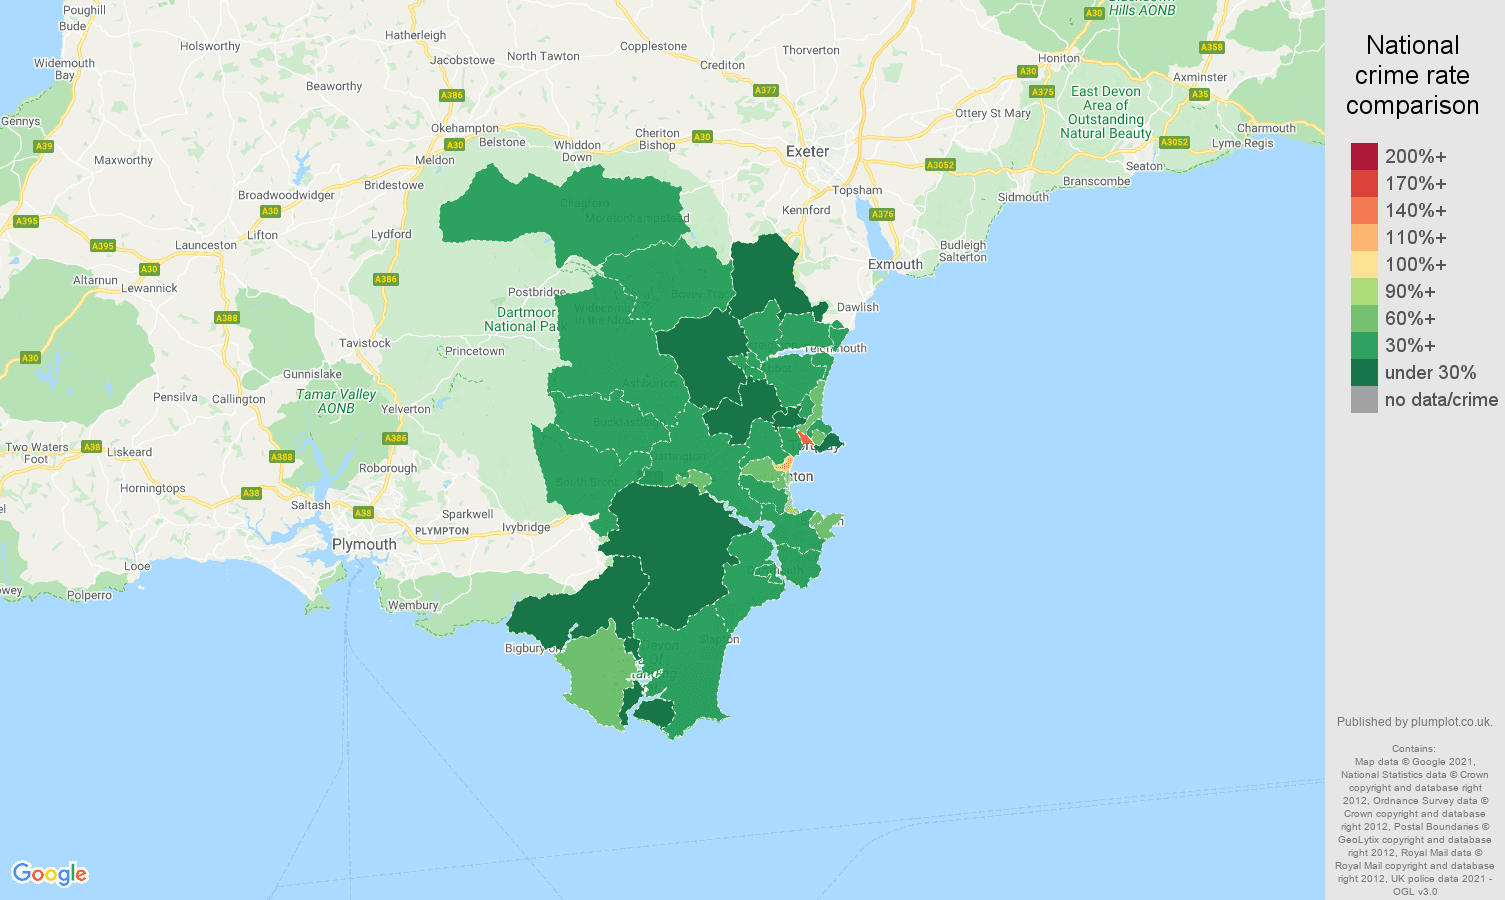 Torquay burglary crime rate comparison map